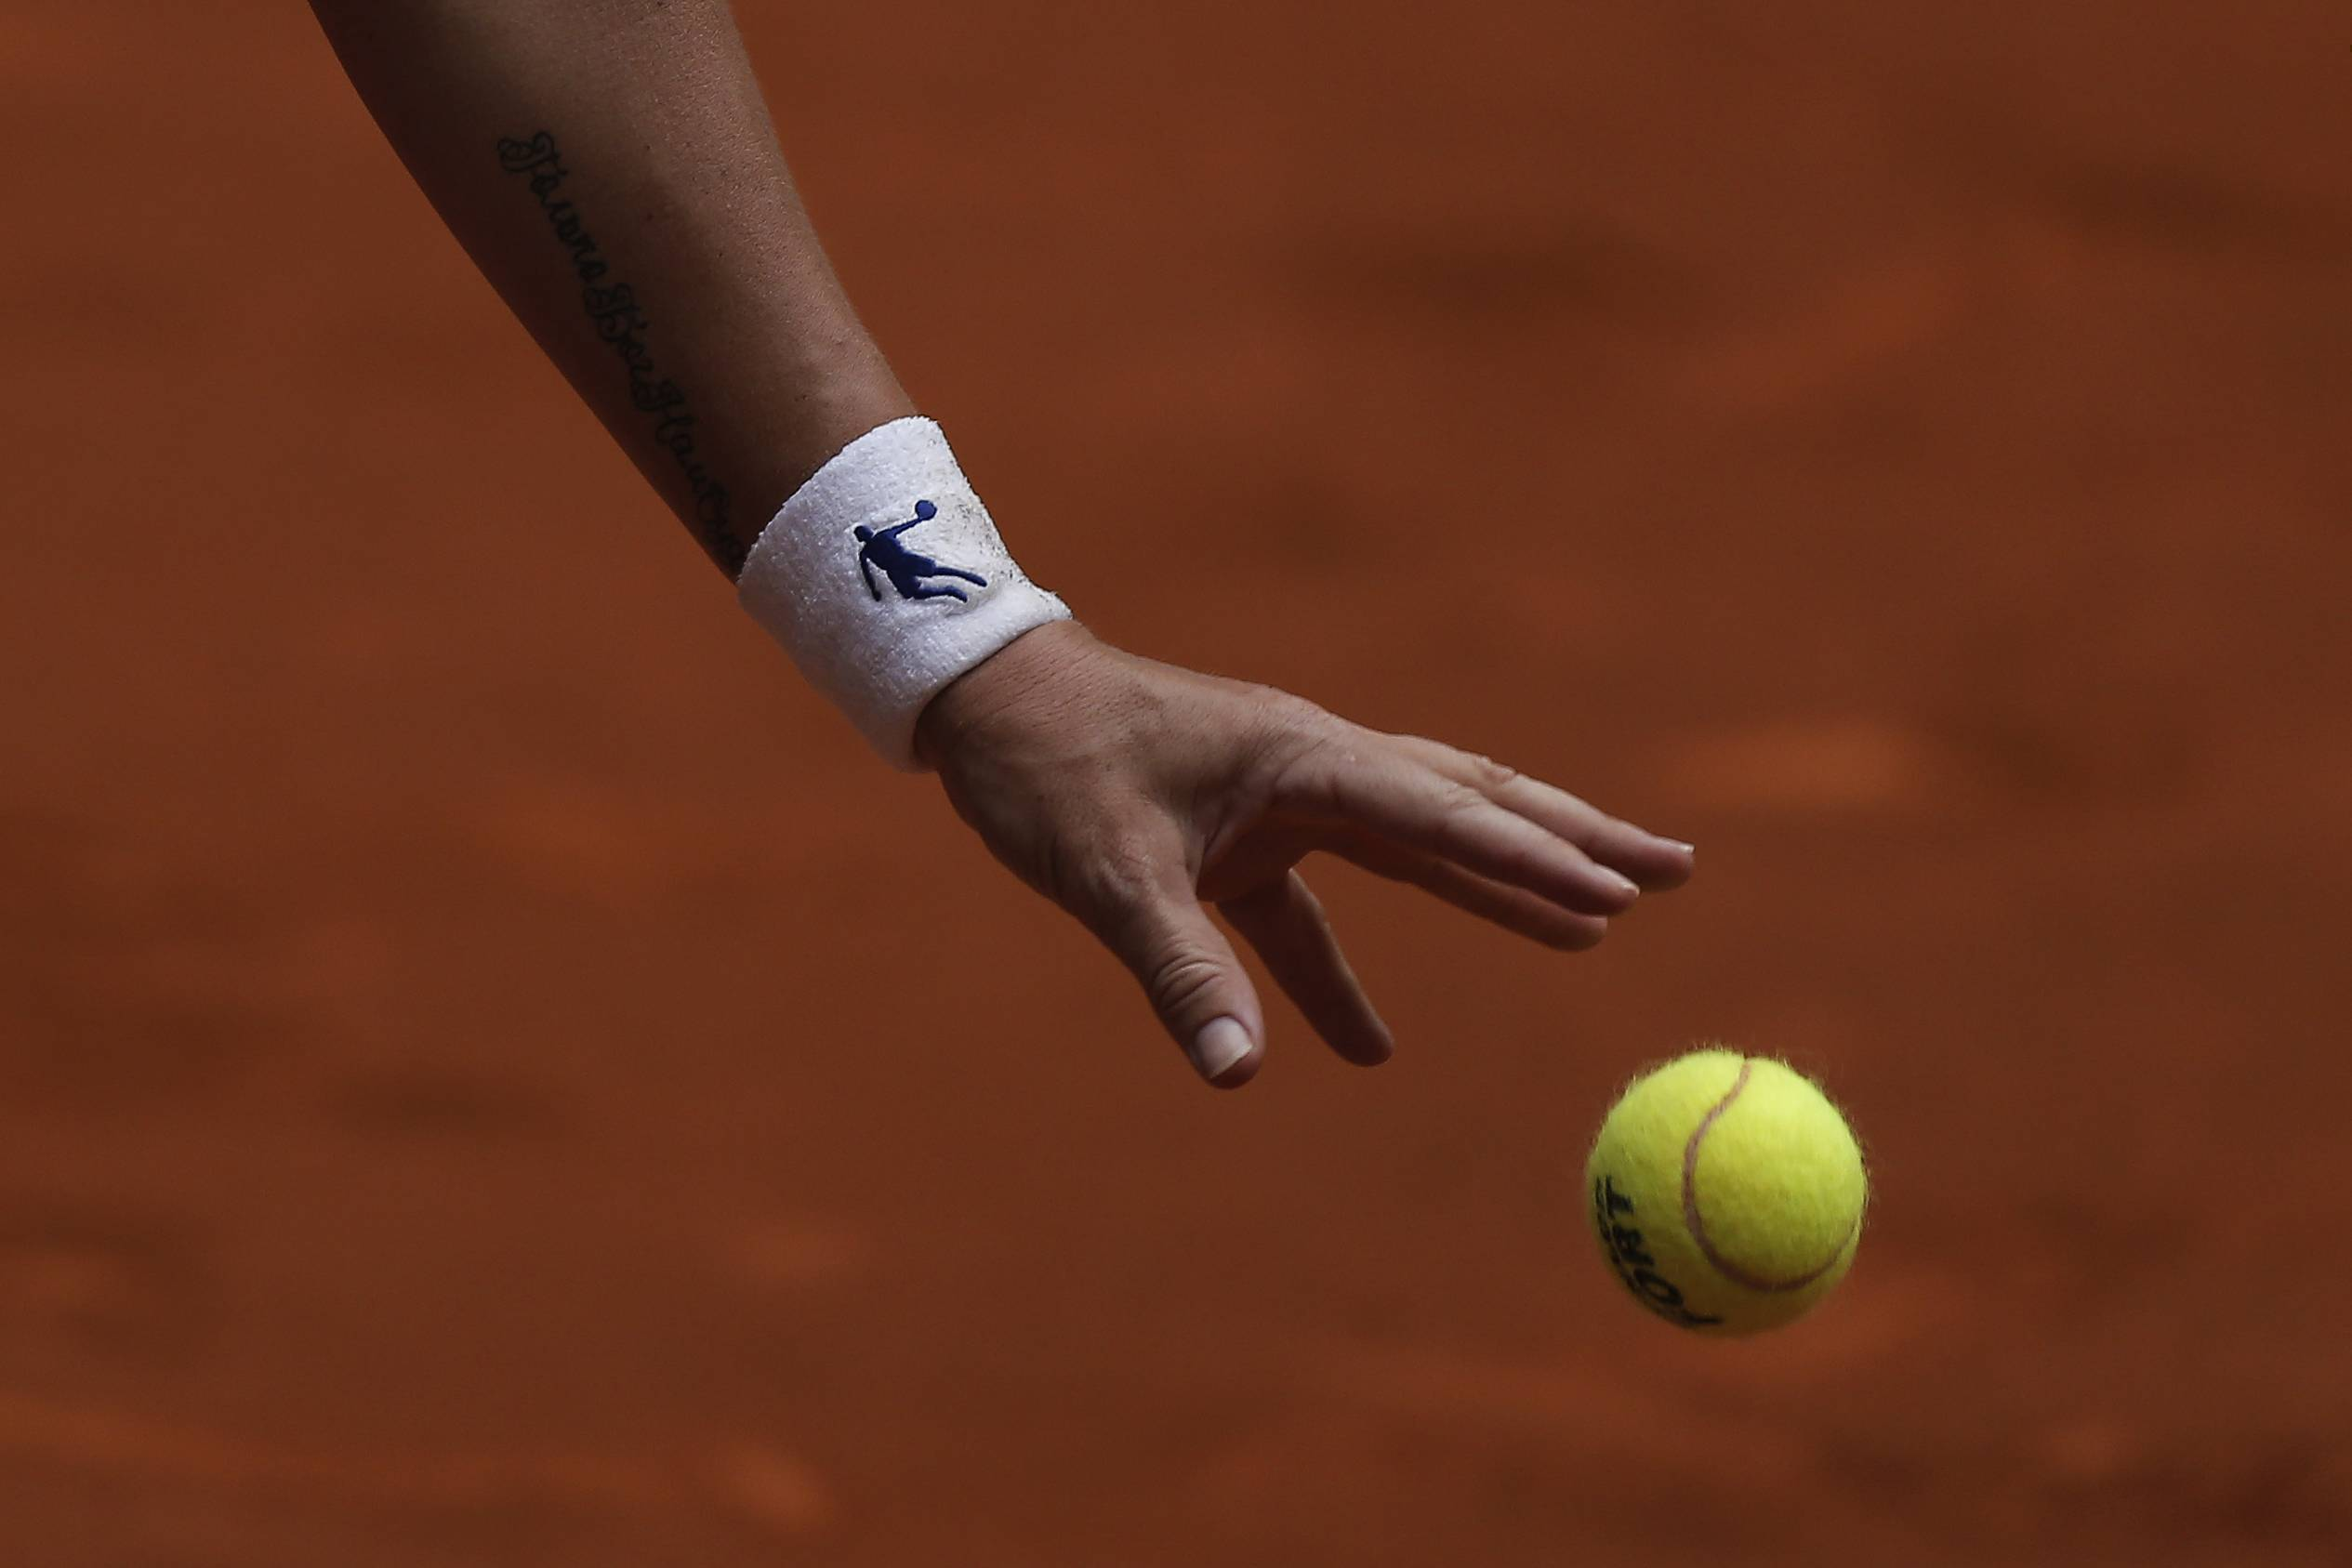 Svetlana Kuznetsova from Russia prepares to serve during a Madrid Open tennis tournament match against Agnieszka Radwanska from Poland, in Madrid, Spain, Wednesday, May 7, 2014.